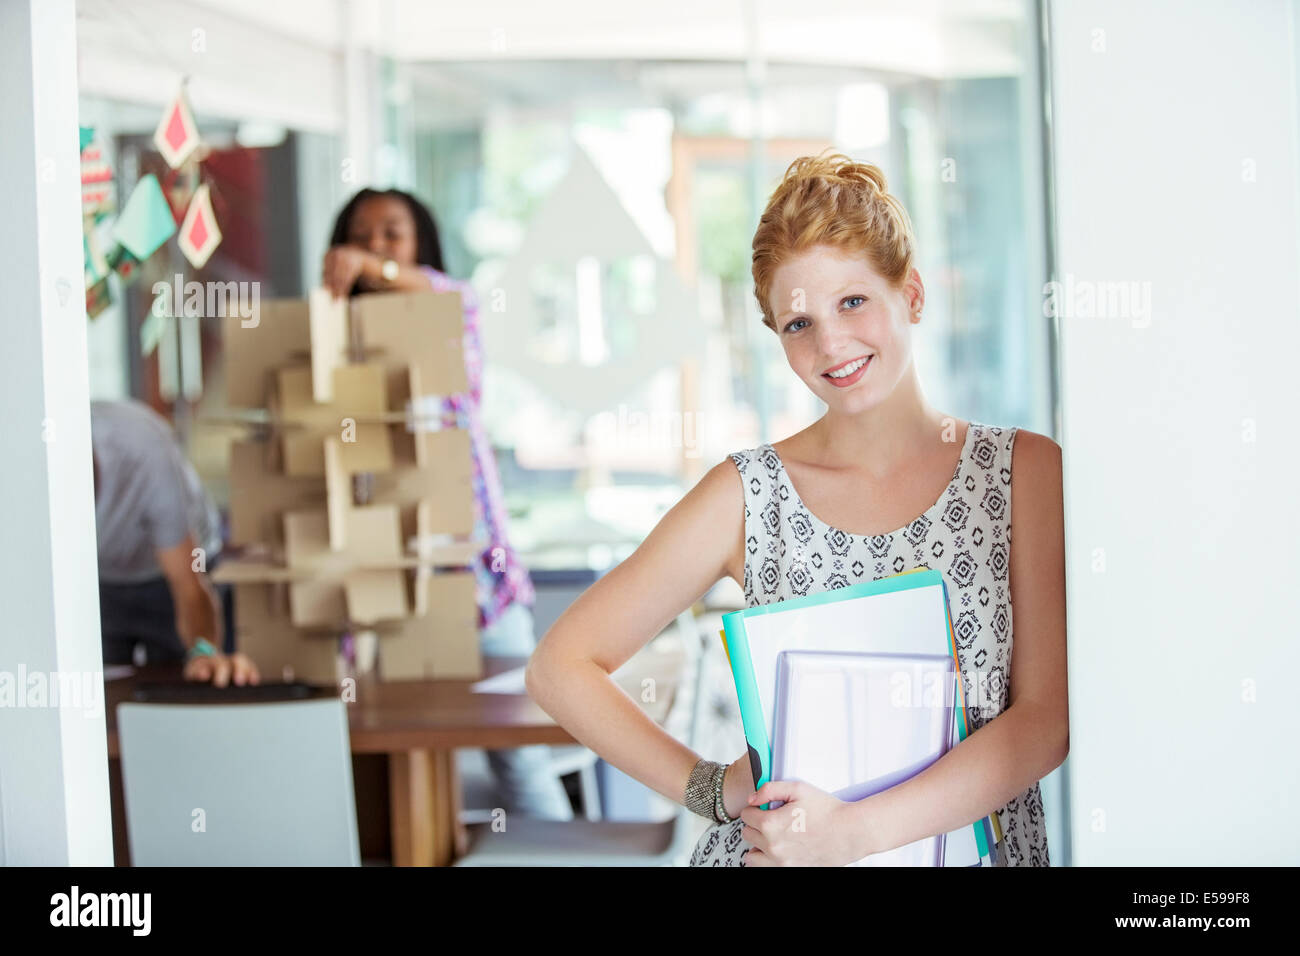 Businesswoman carrying binders in office - Stock Image